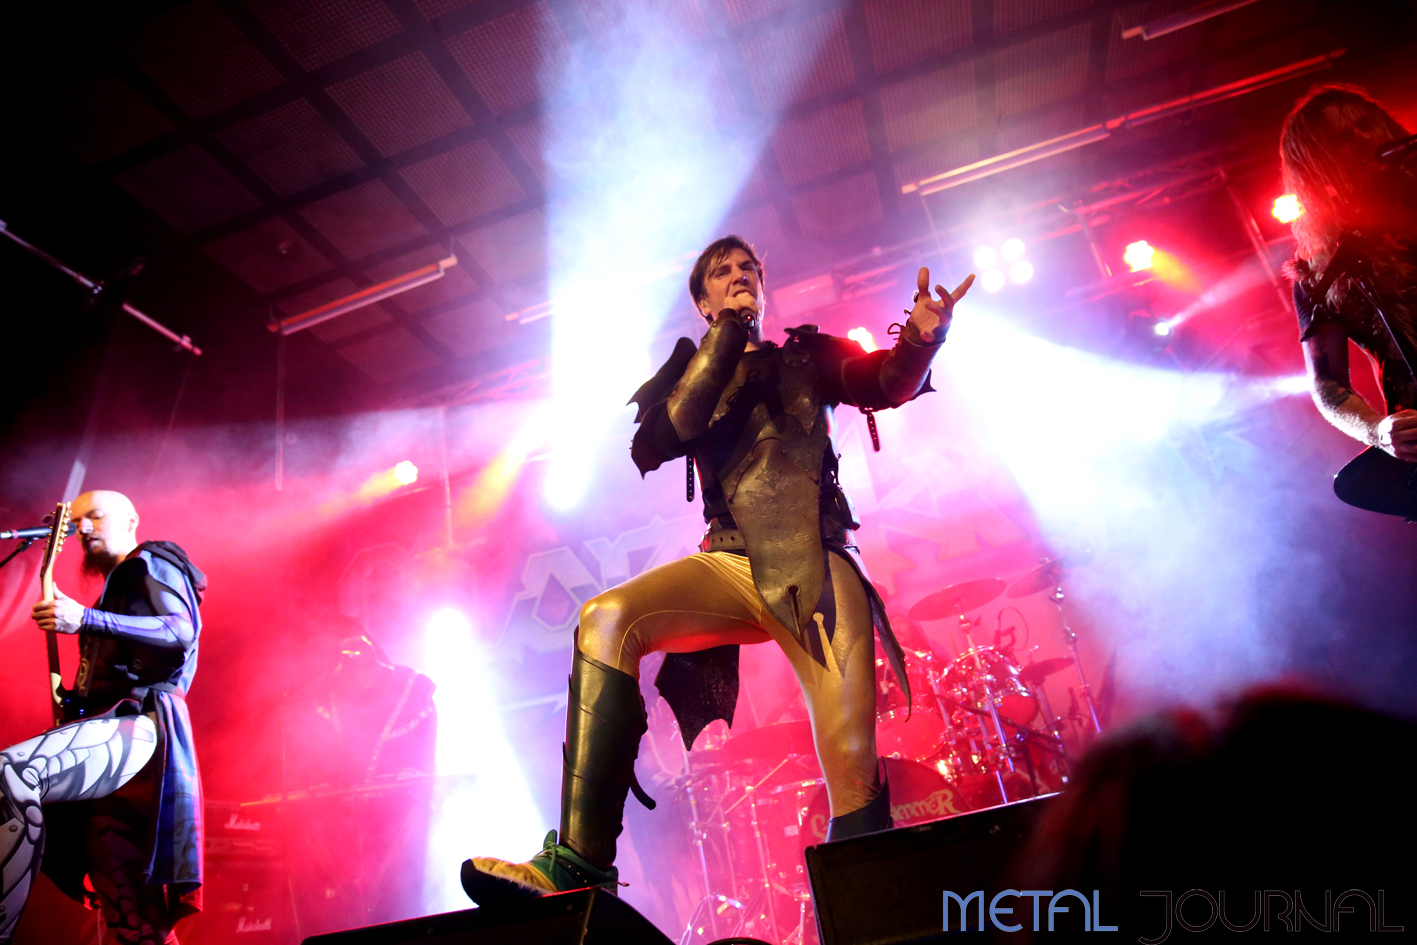 gloryhammer - metal journal 2018 pic 3